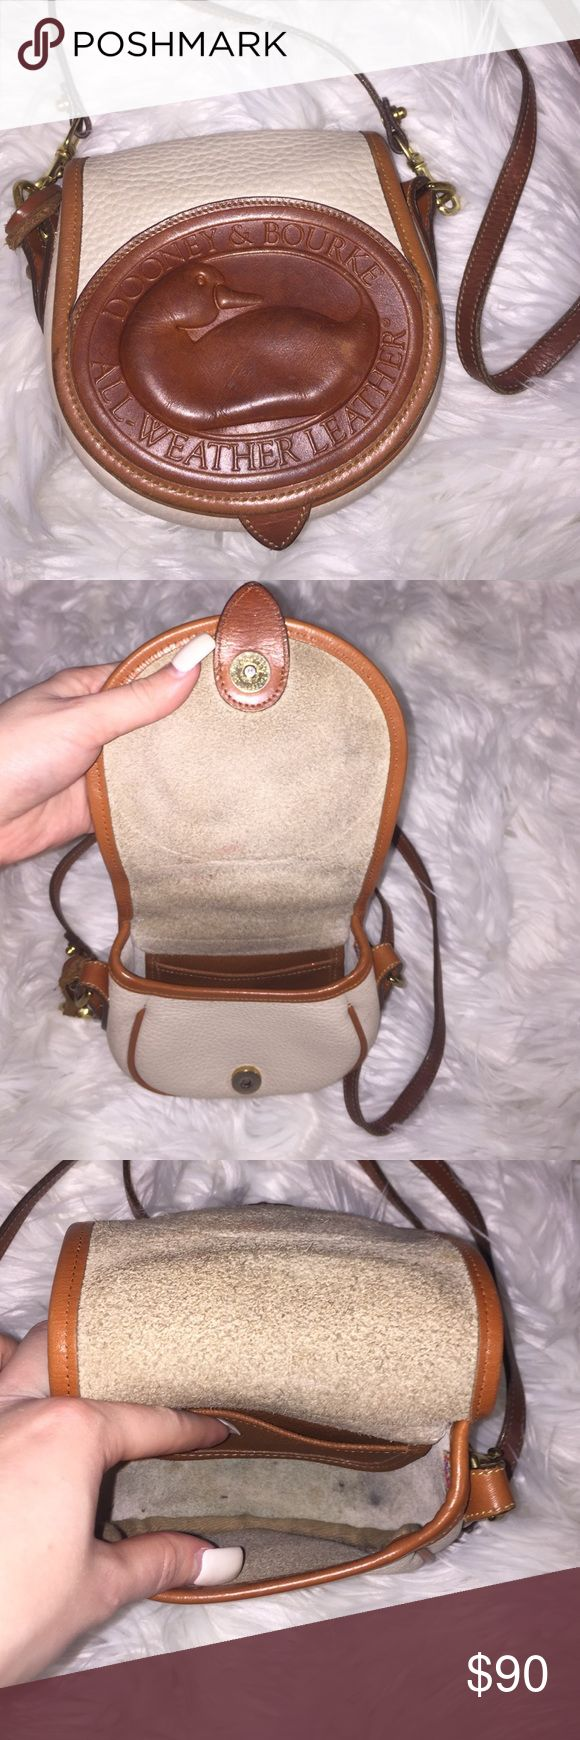 Dooney & Bourke All Weather Leather Side Purse Super cute and has lasted me forever! It's a collectors! Dooney & Bourke Bags Crossbody Bags